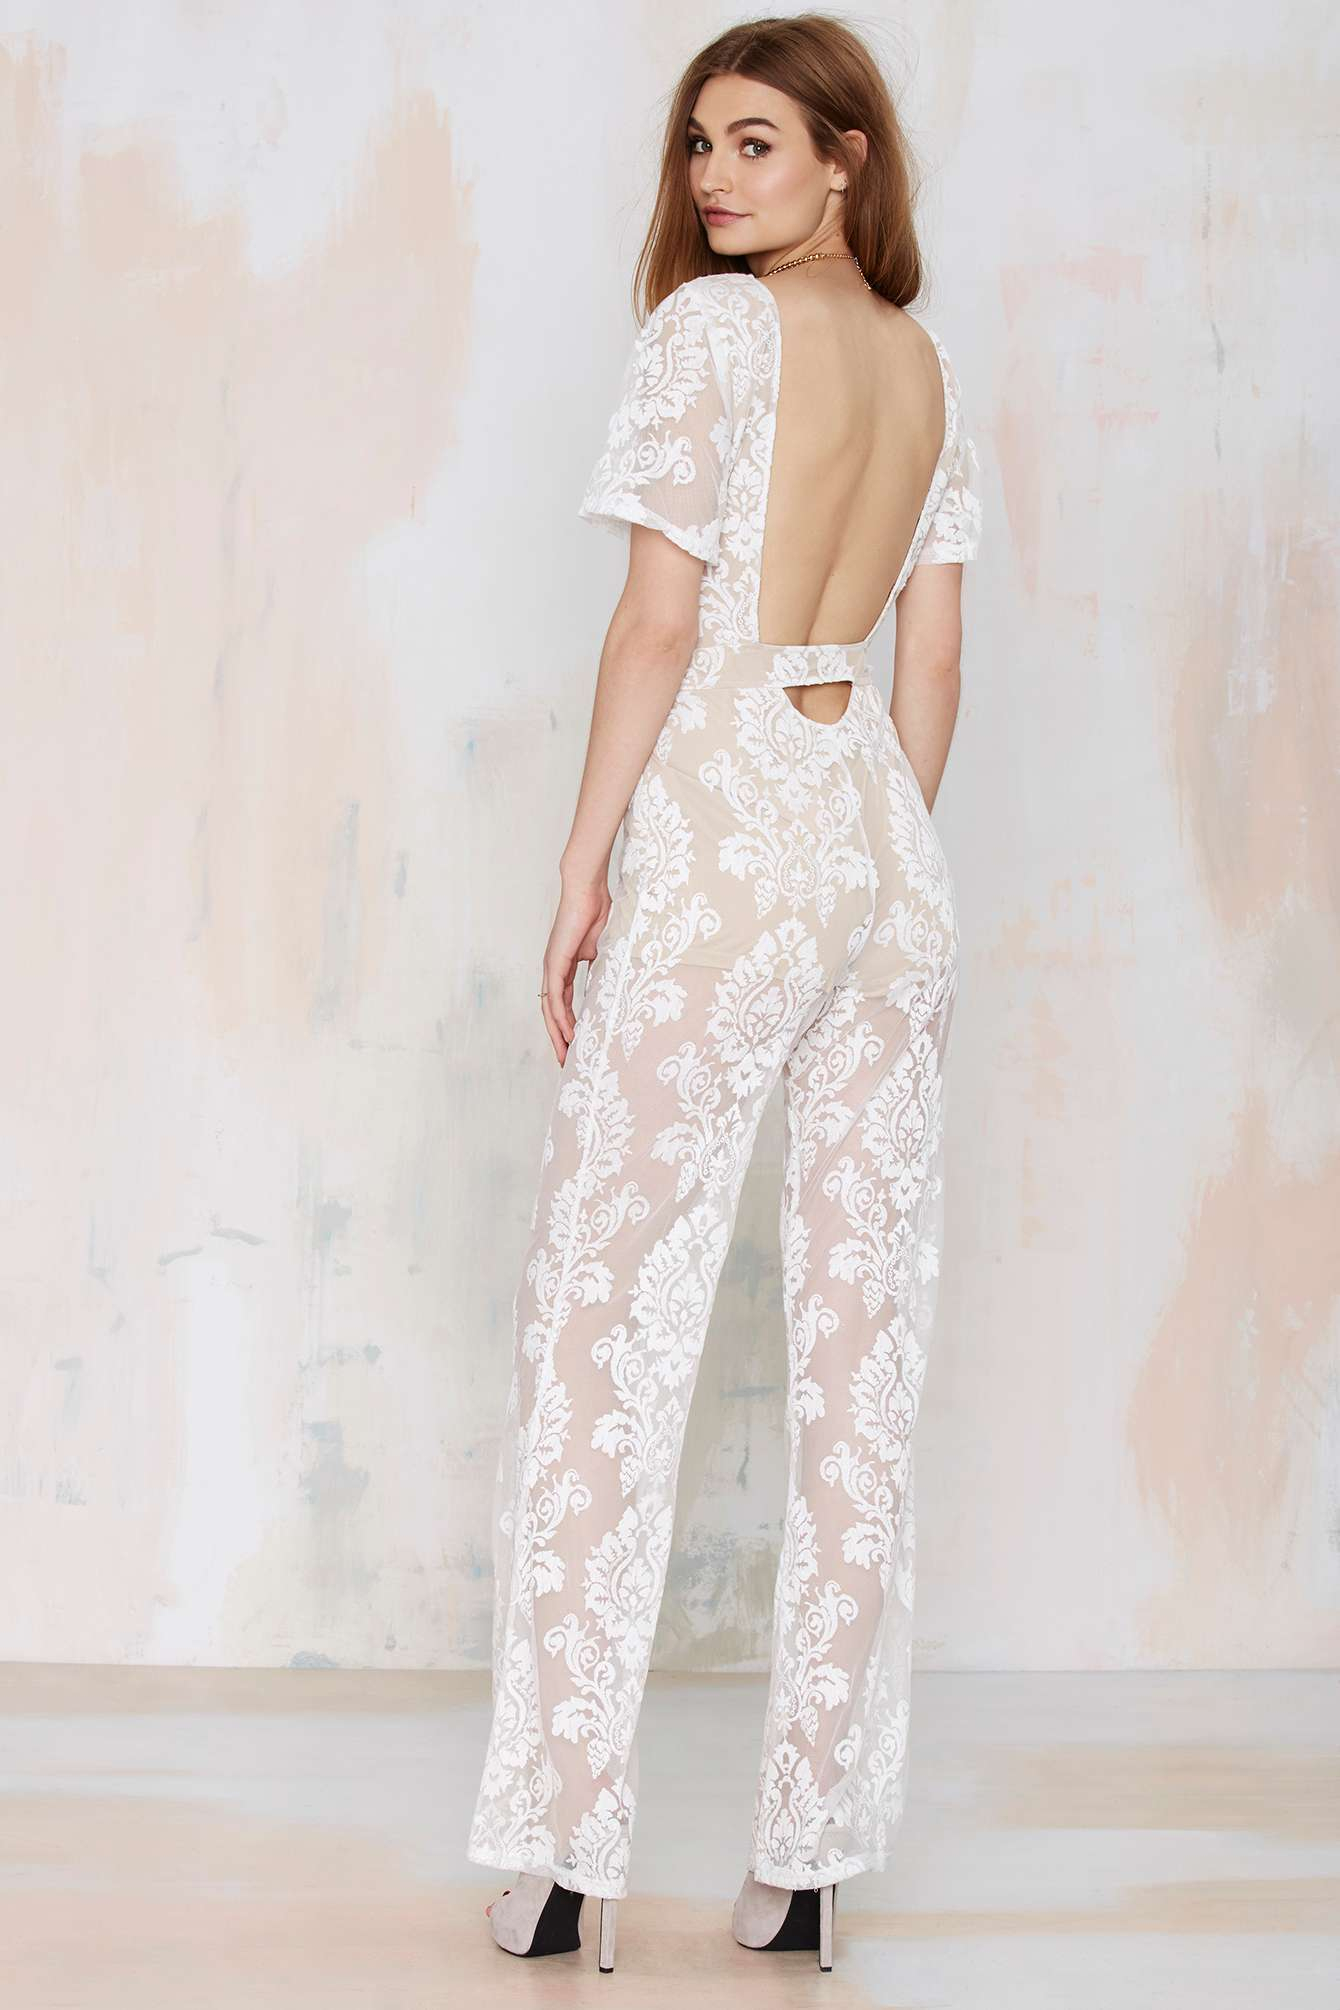 Lace Panel White Off the Shoulder Jumpsuit with cheap wholesale price, buy Lace Panel White Off the Shoulder Jumpsuit at private-dev.tk!